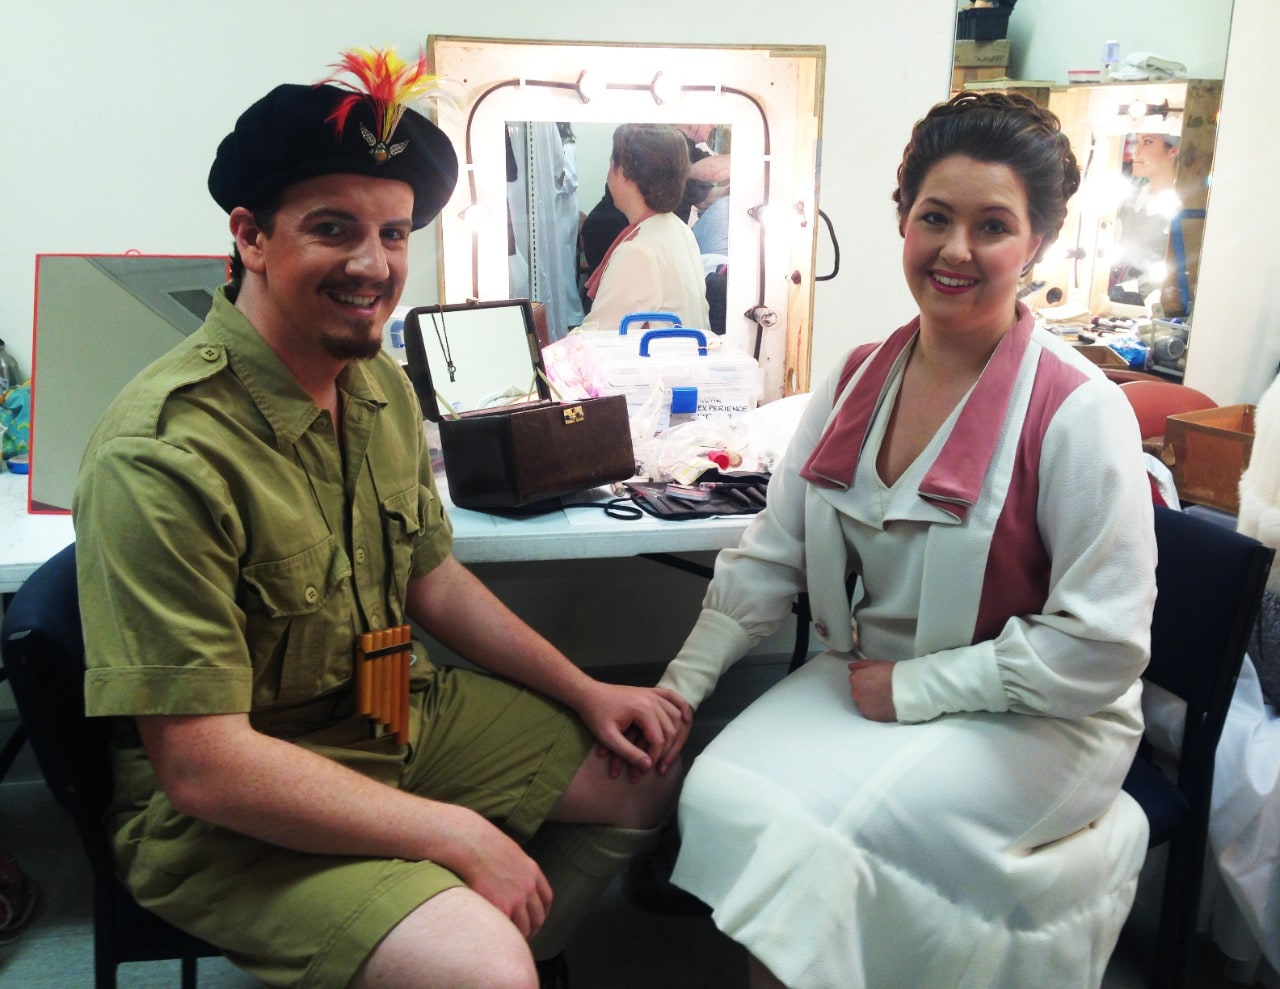 Con Opera students Tristan Entwistle and Samanta Lestavel starring in Opera Australia's production of Mozart's The Magic Flute.